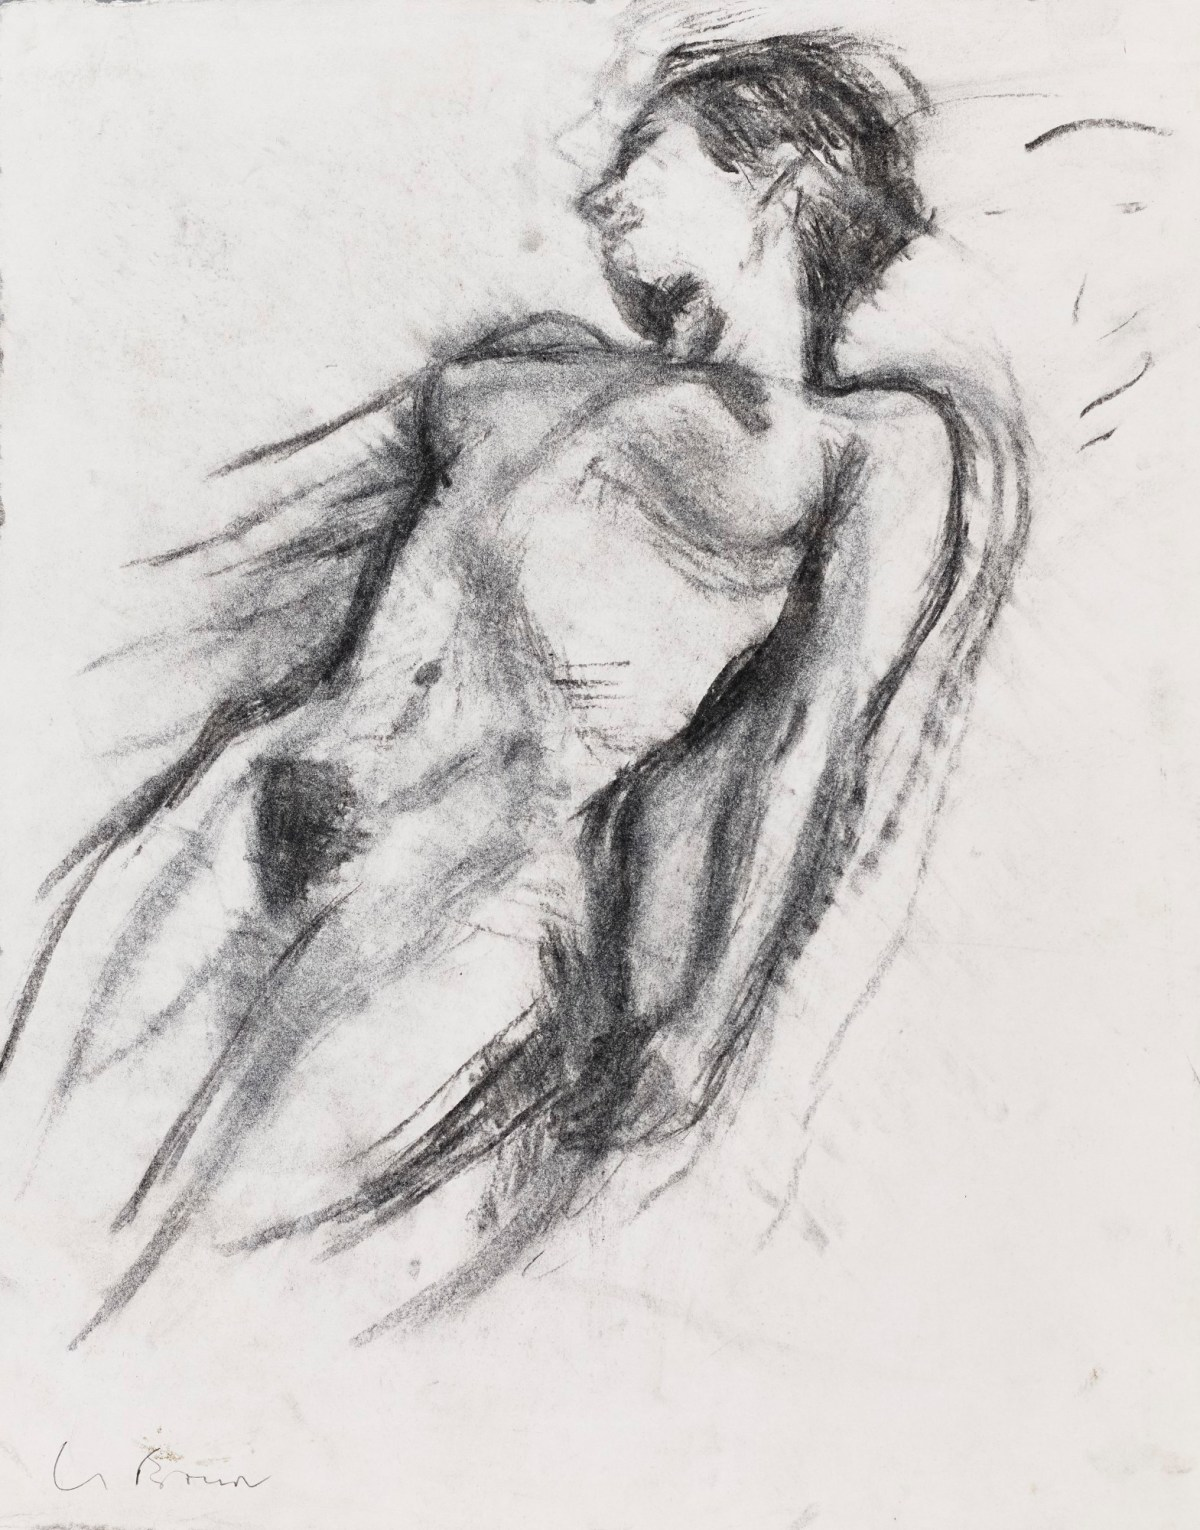 Christopher le brun pra life drawing of a reclining female figure